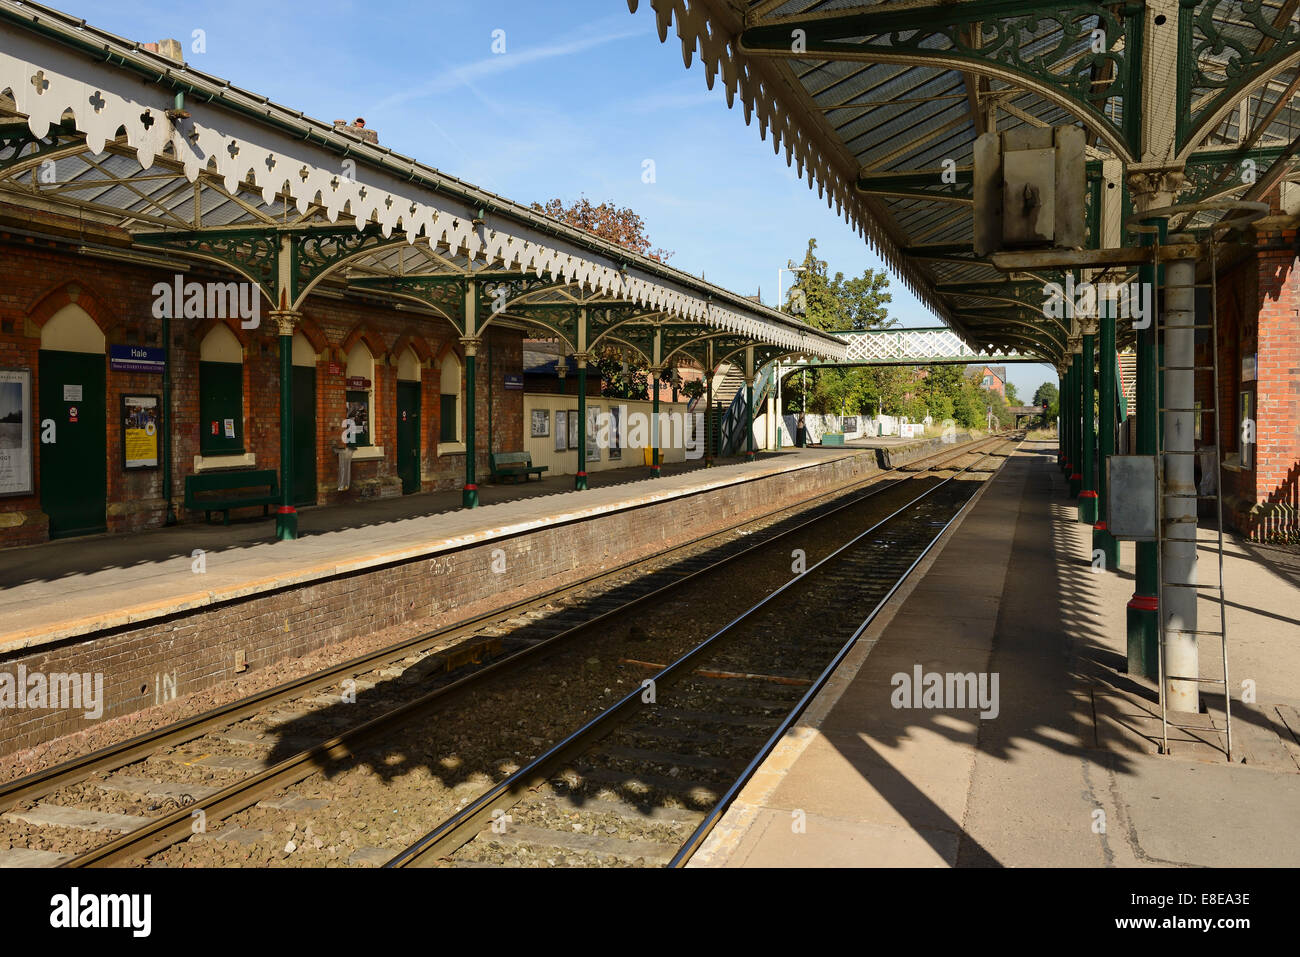 The railway station platforms and decorative canopy at Hale Greater Manchester UK - Stock Image